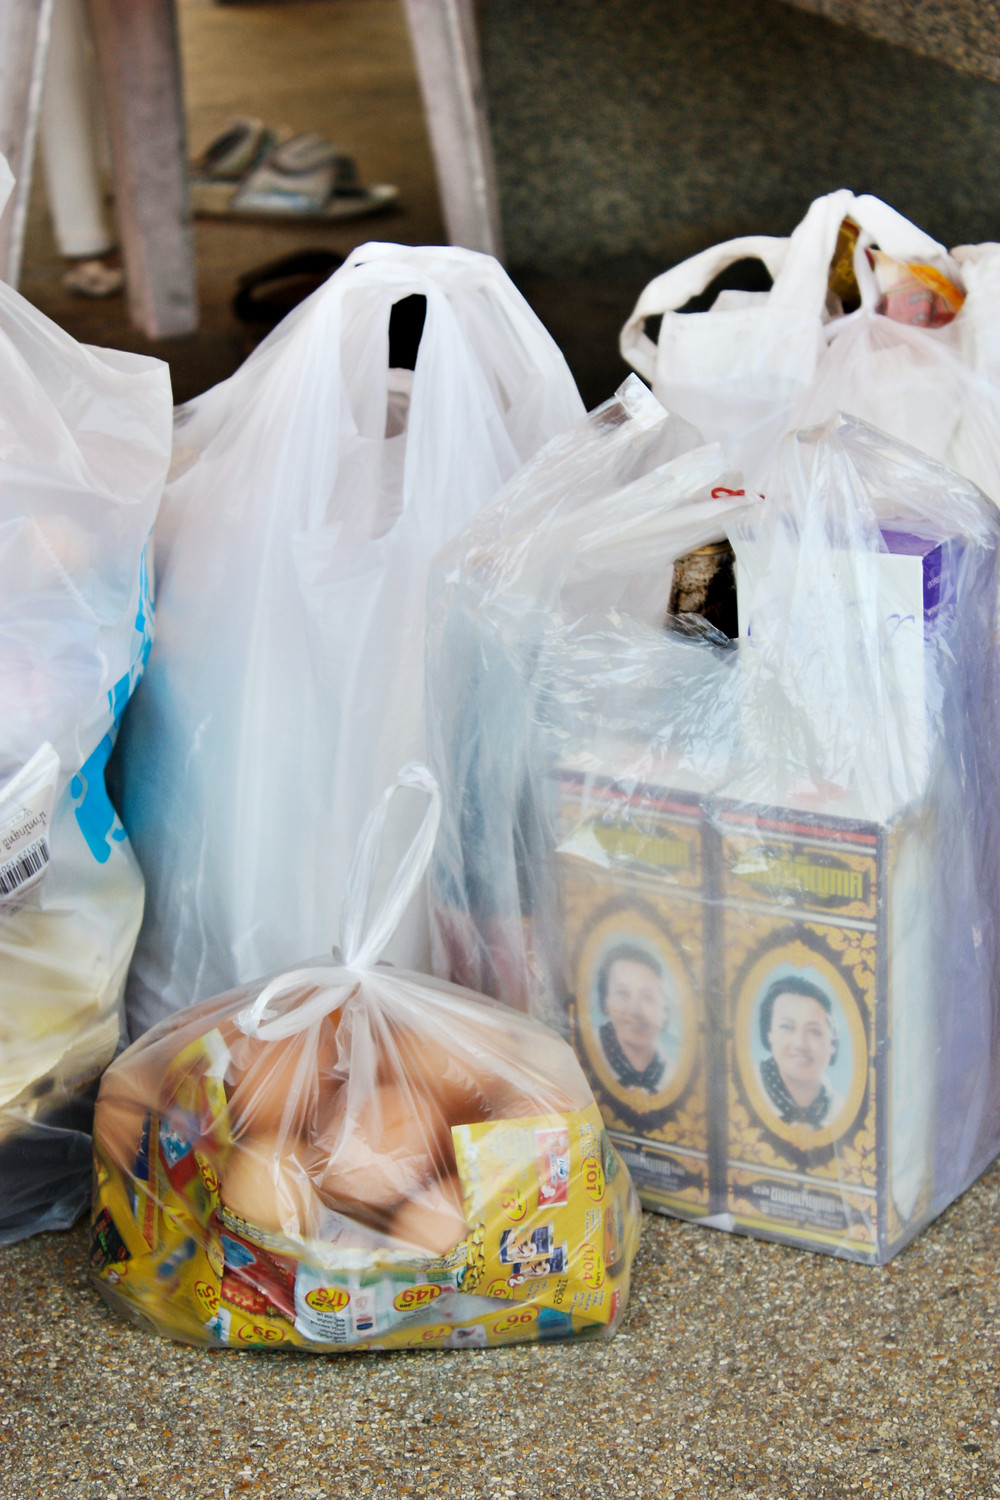 How Are Plastic Shopping Bags Recycled- Plastic Shopping Bags Recyclable Process